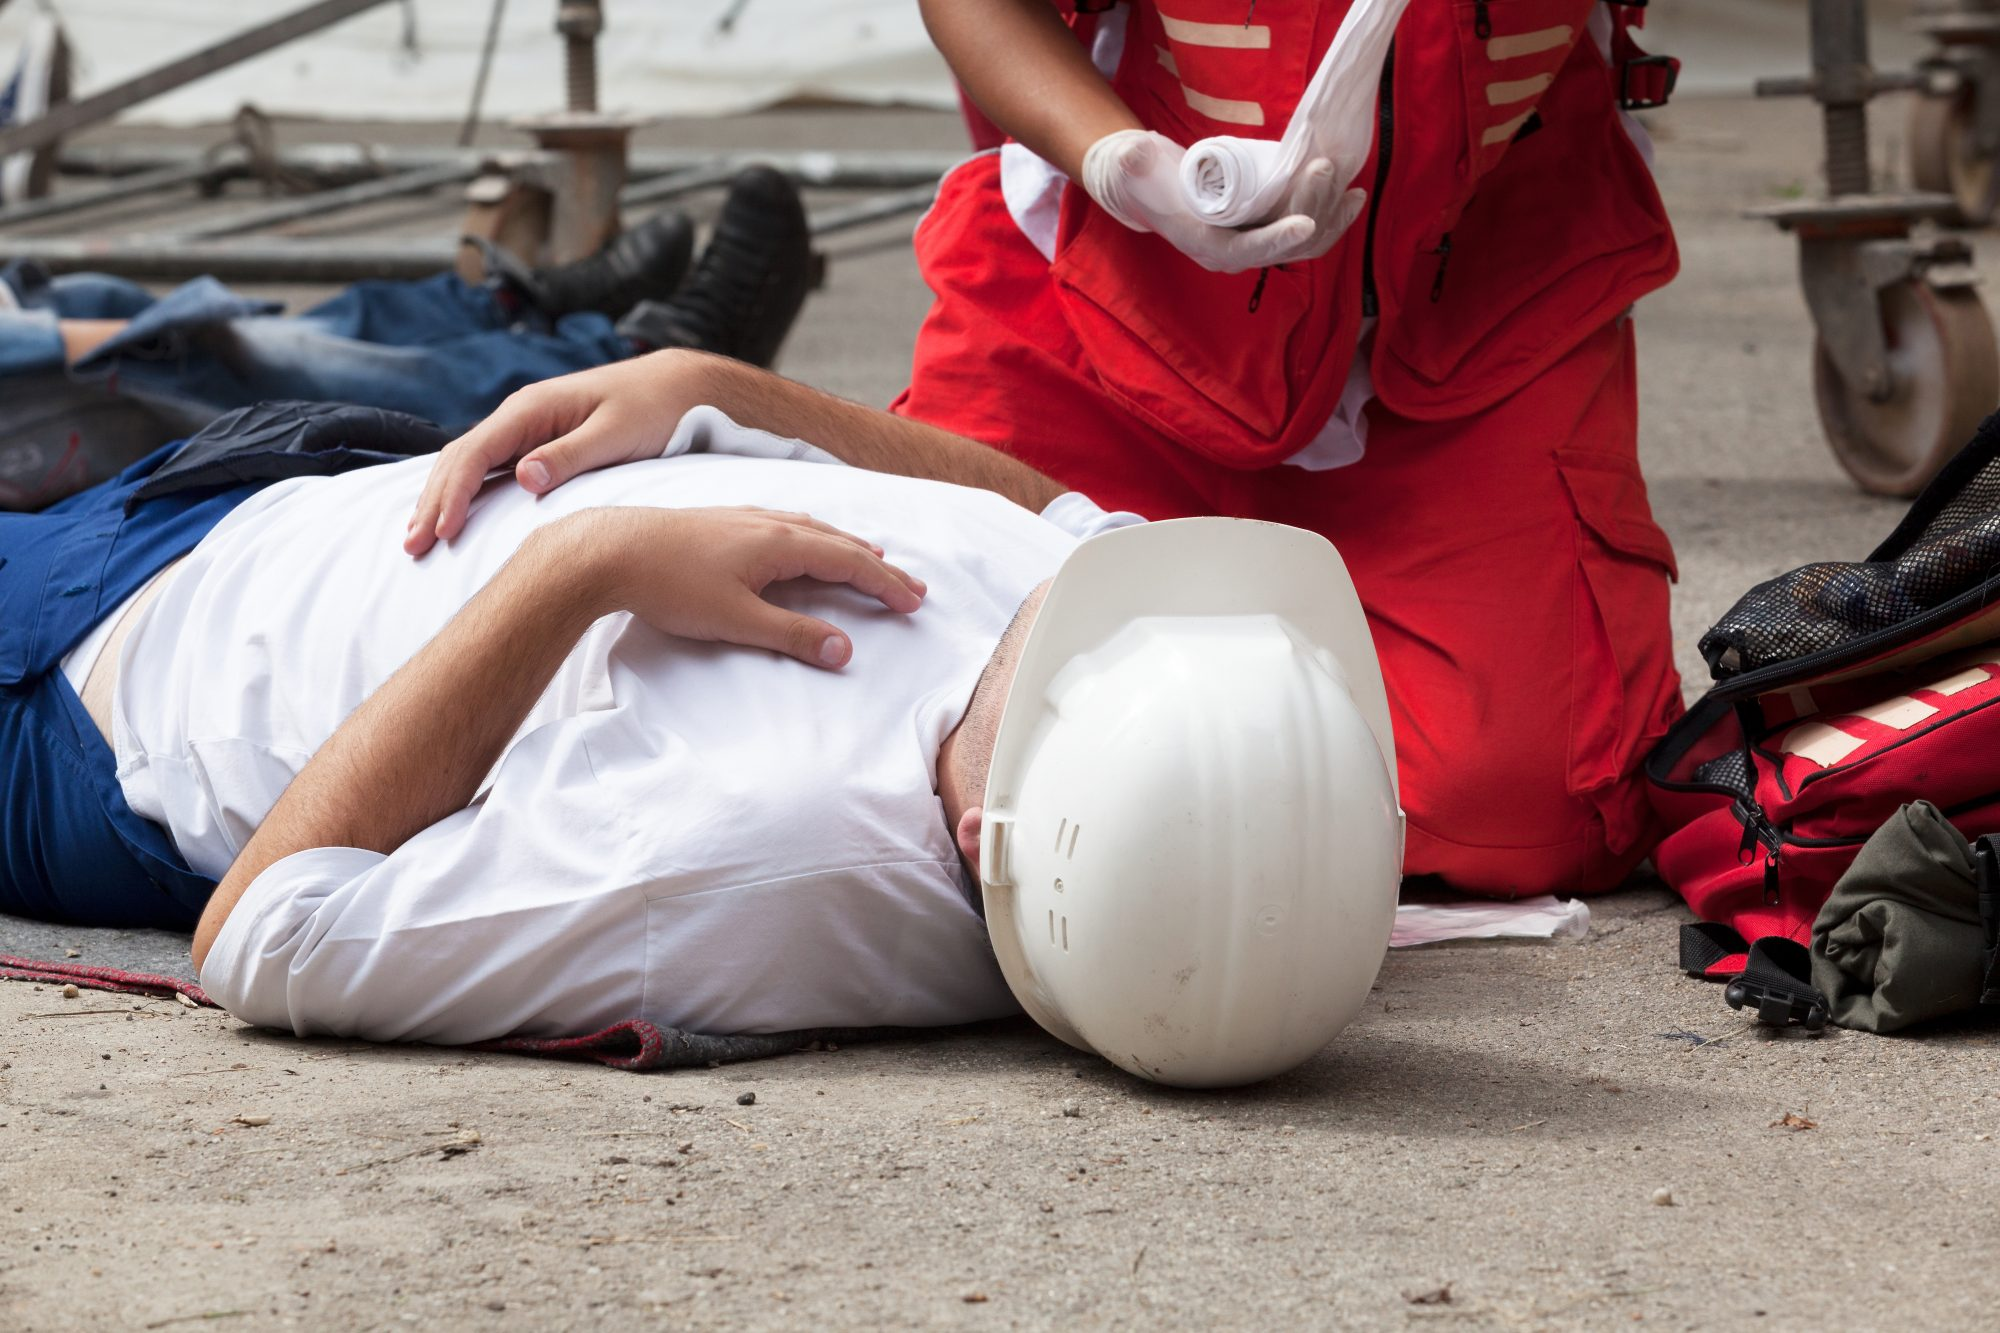 Inadequate Training Accidents